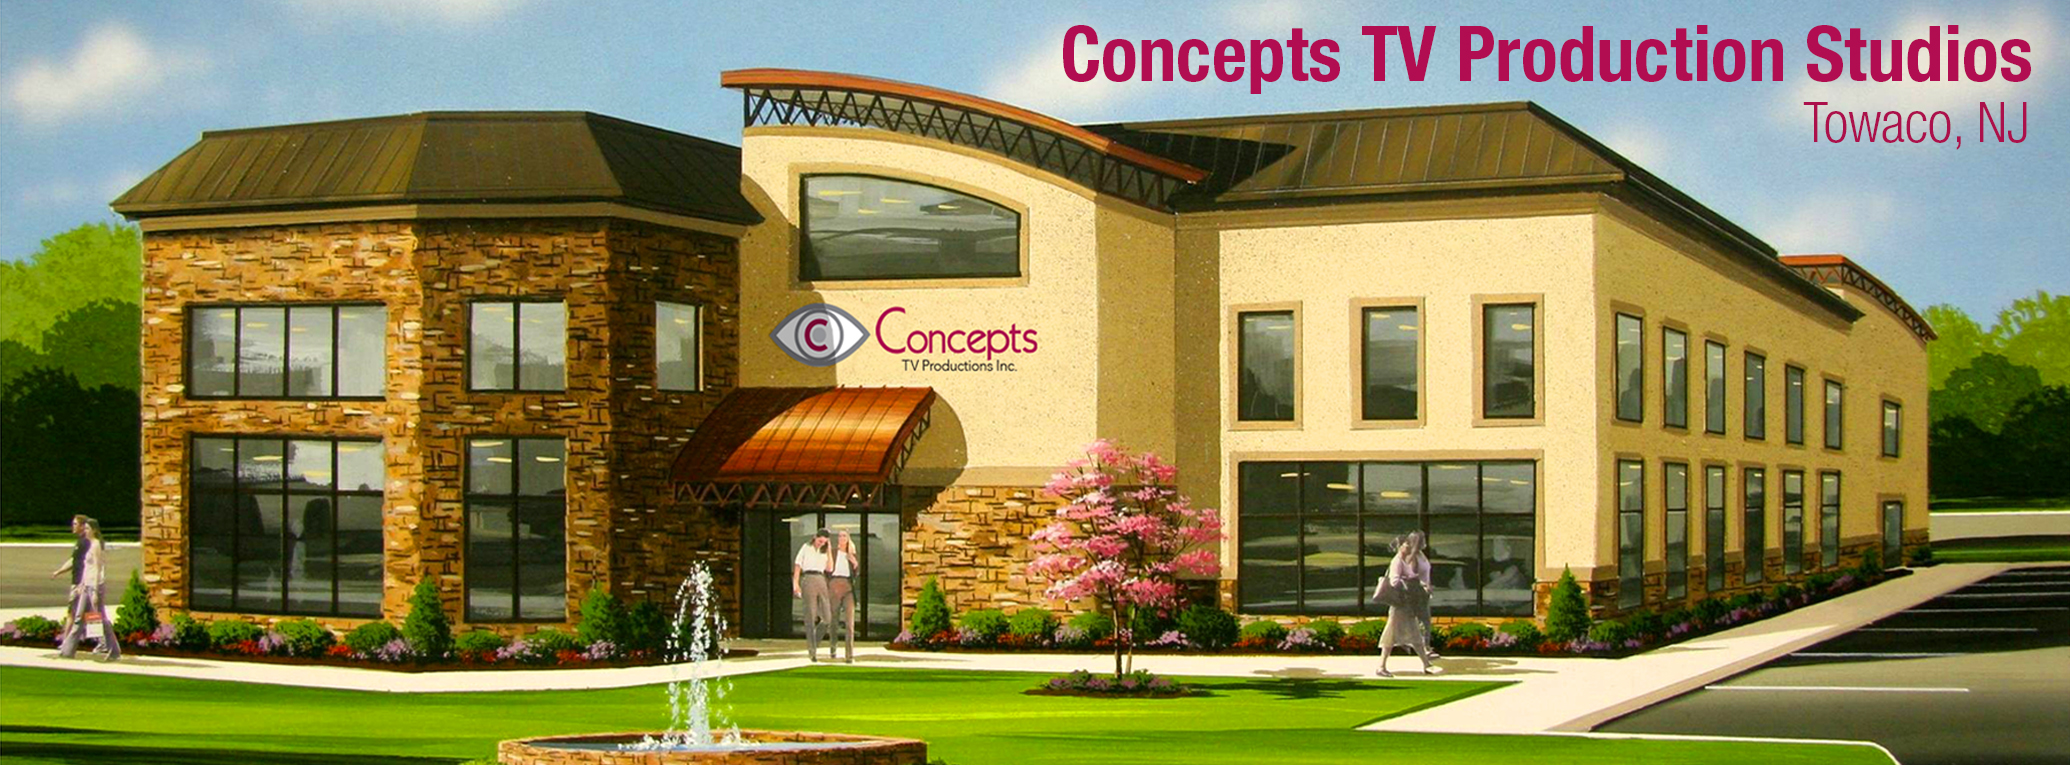 Concepts TV Productions Headquarters